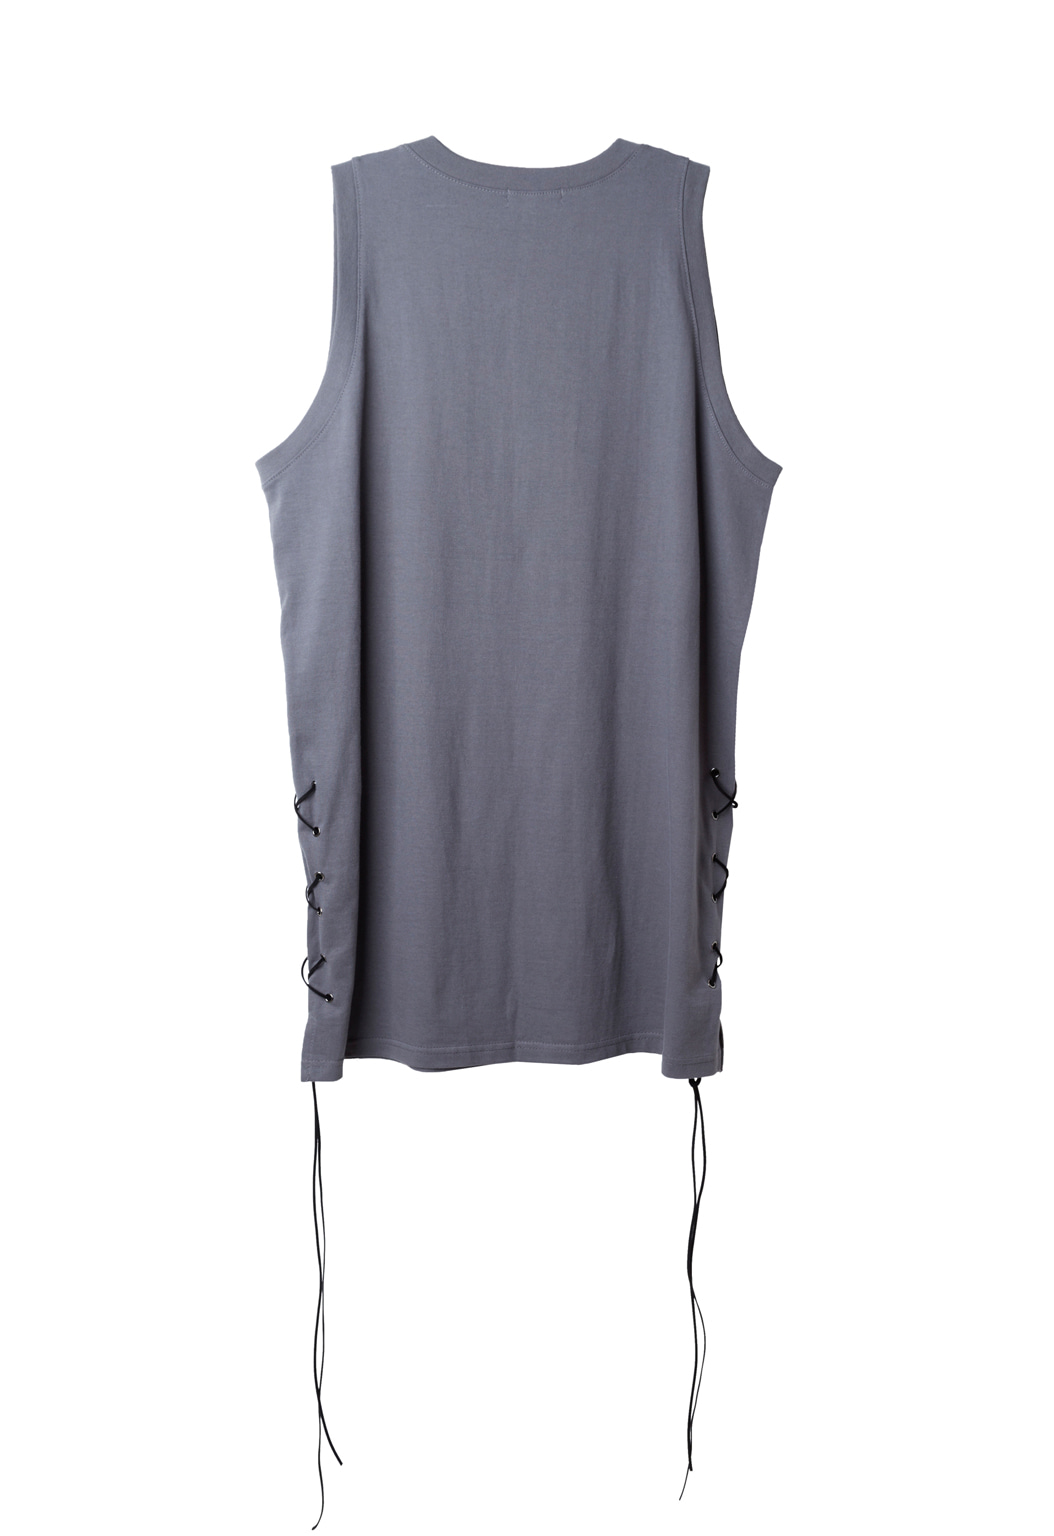 strap sleeveless shirts - gray